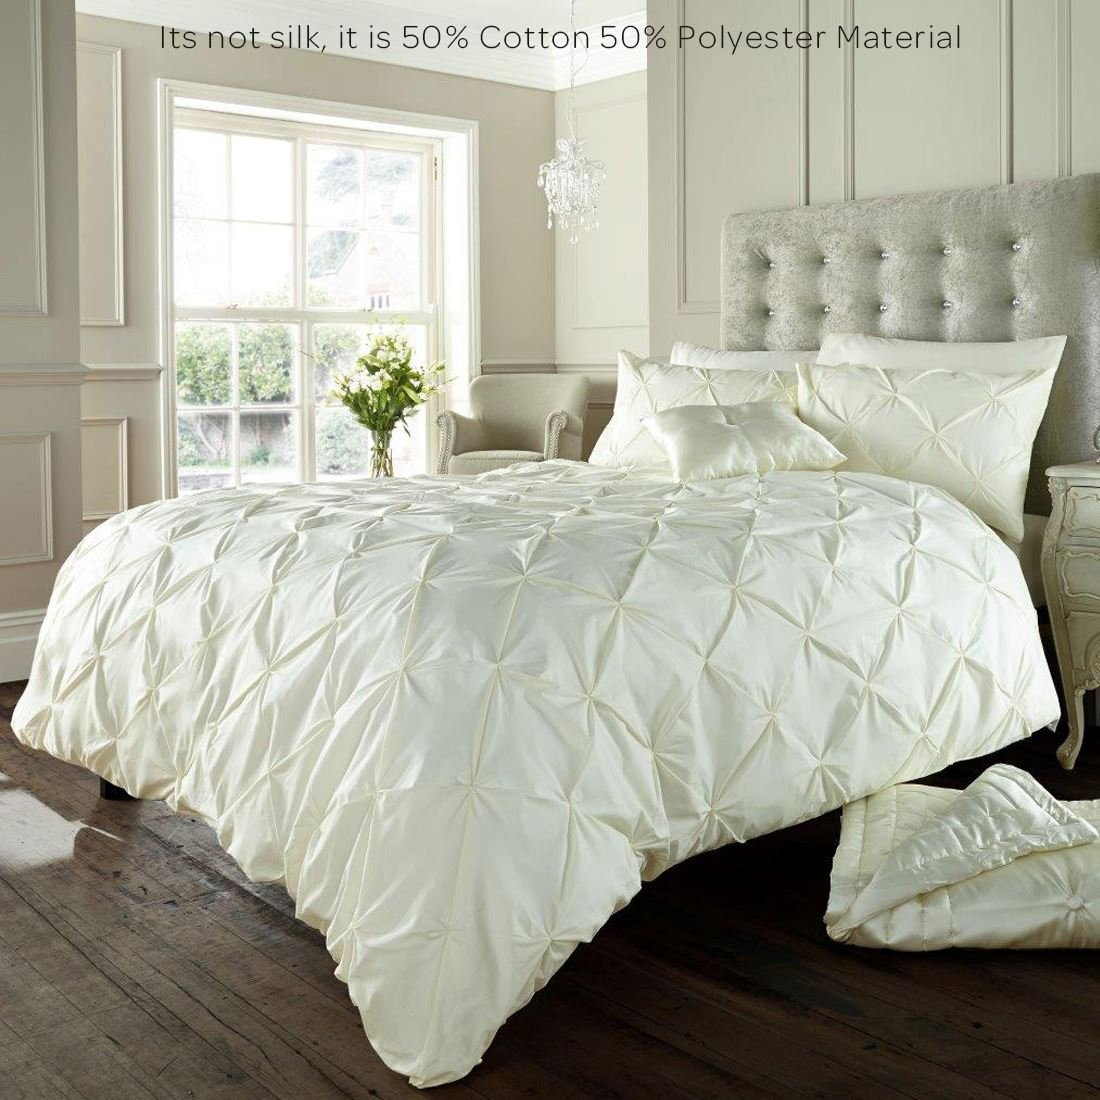 alford duvet cover with pillowcase quilt cover bedding set  black  - alford duvet cover with pillowcase quilt cover bedding set  black  kingamazoncouk kitchen  home